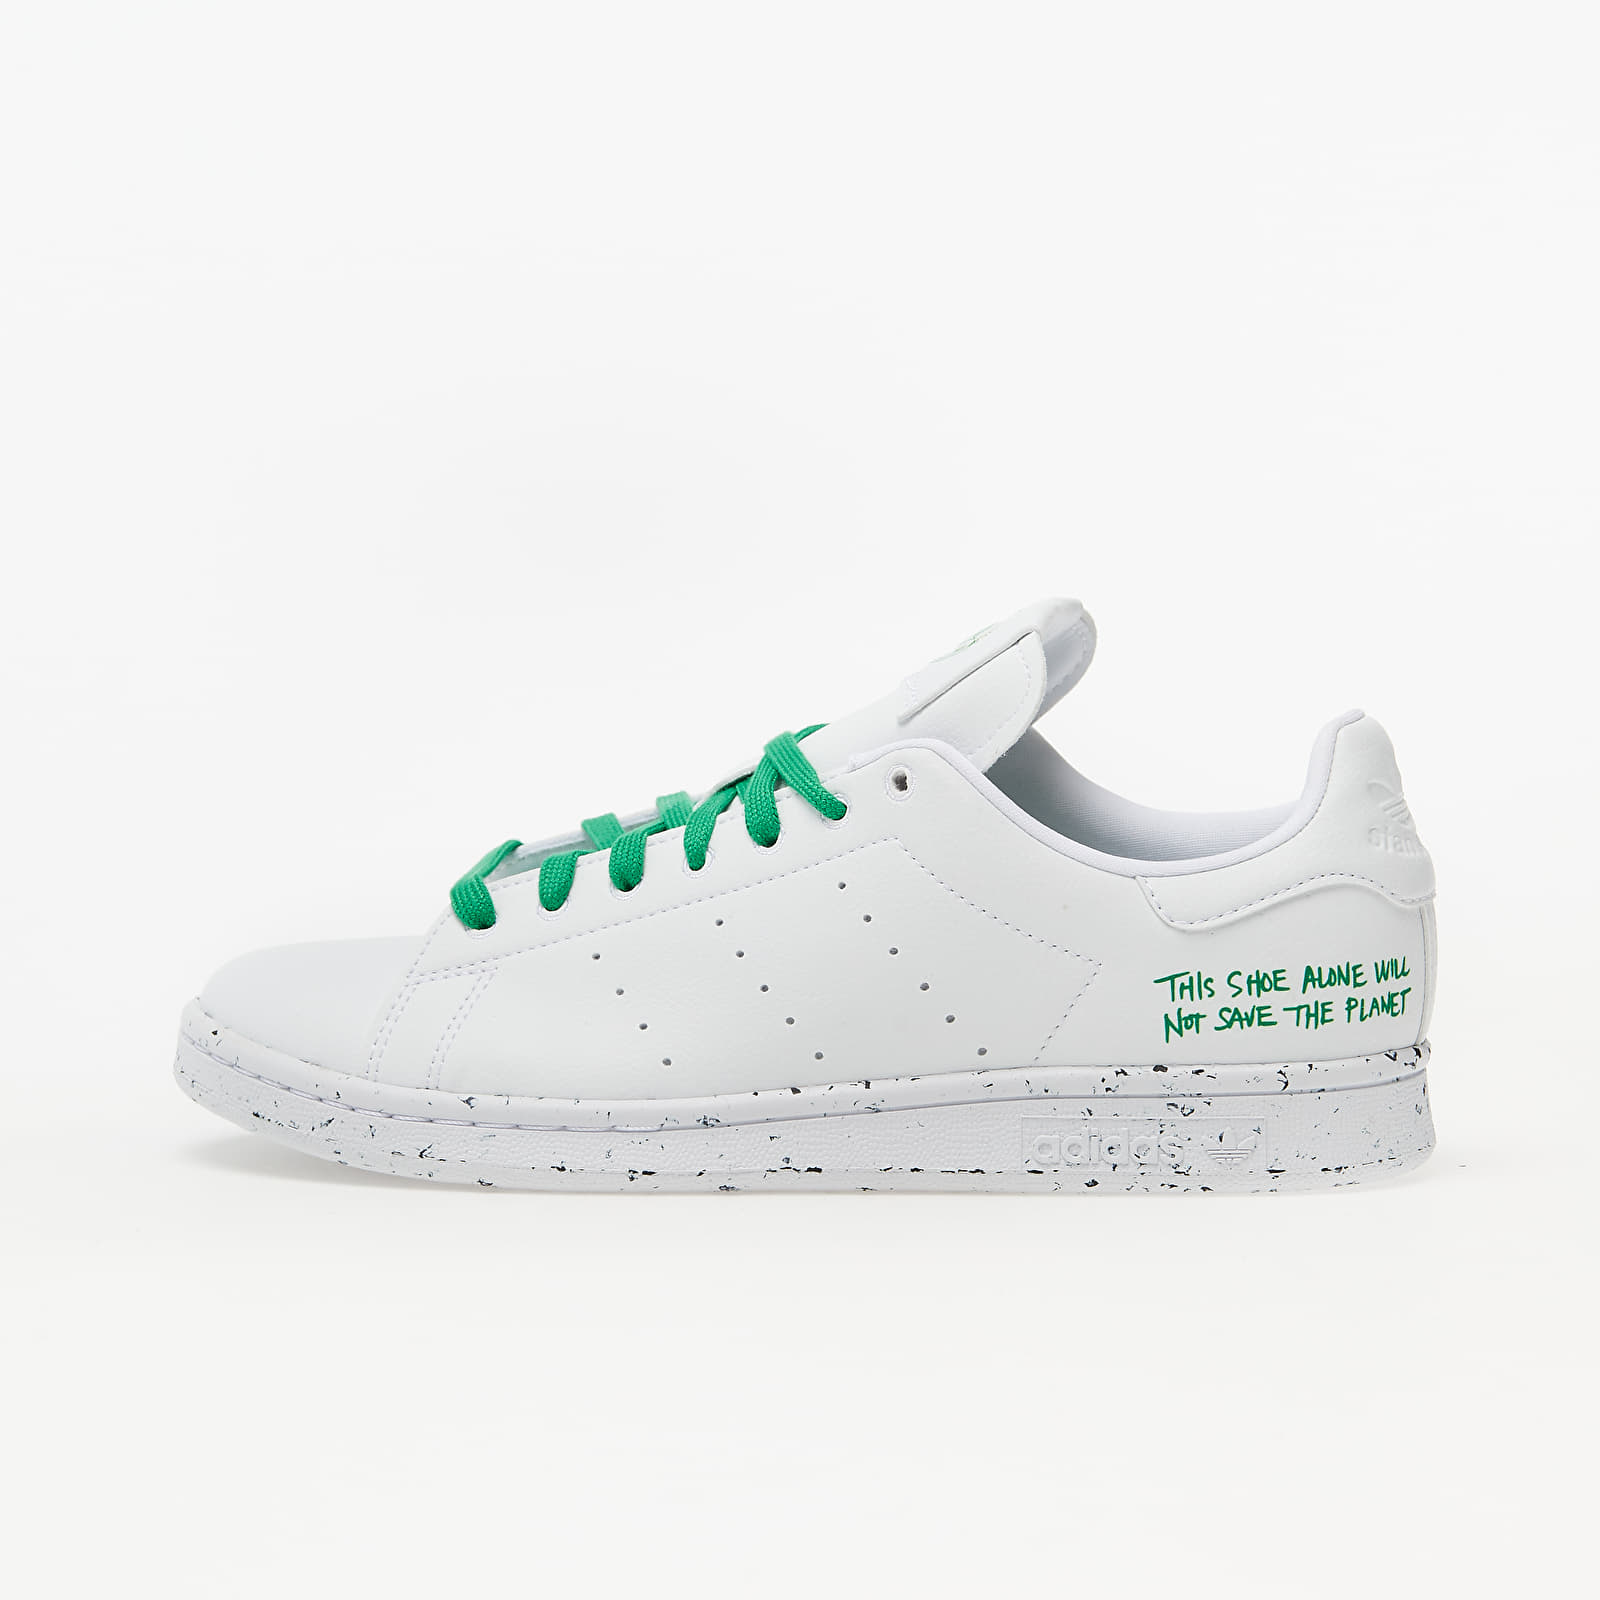 Pánske tenisky a topánky adidas Stan Smith Clean Classics Ftw White/ Ftw White/ Green